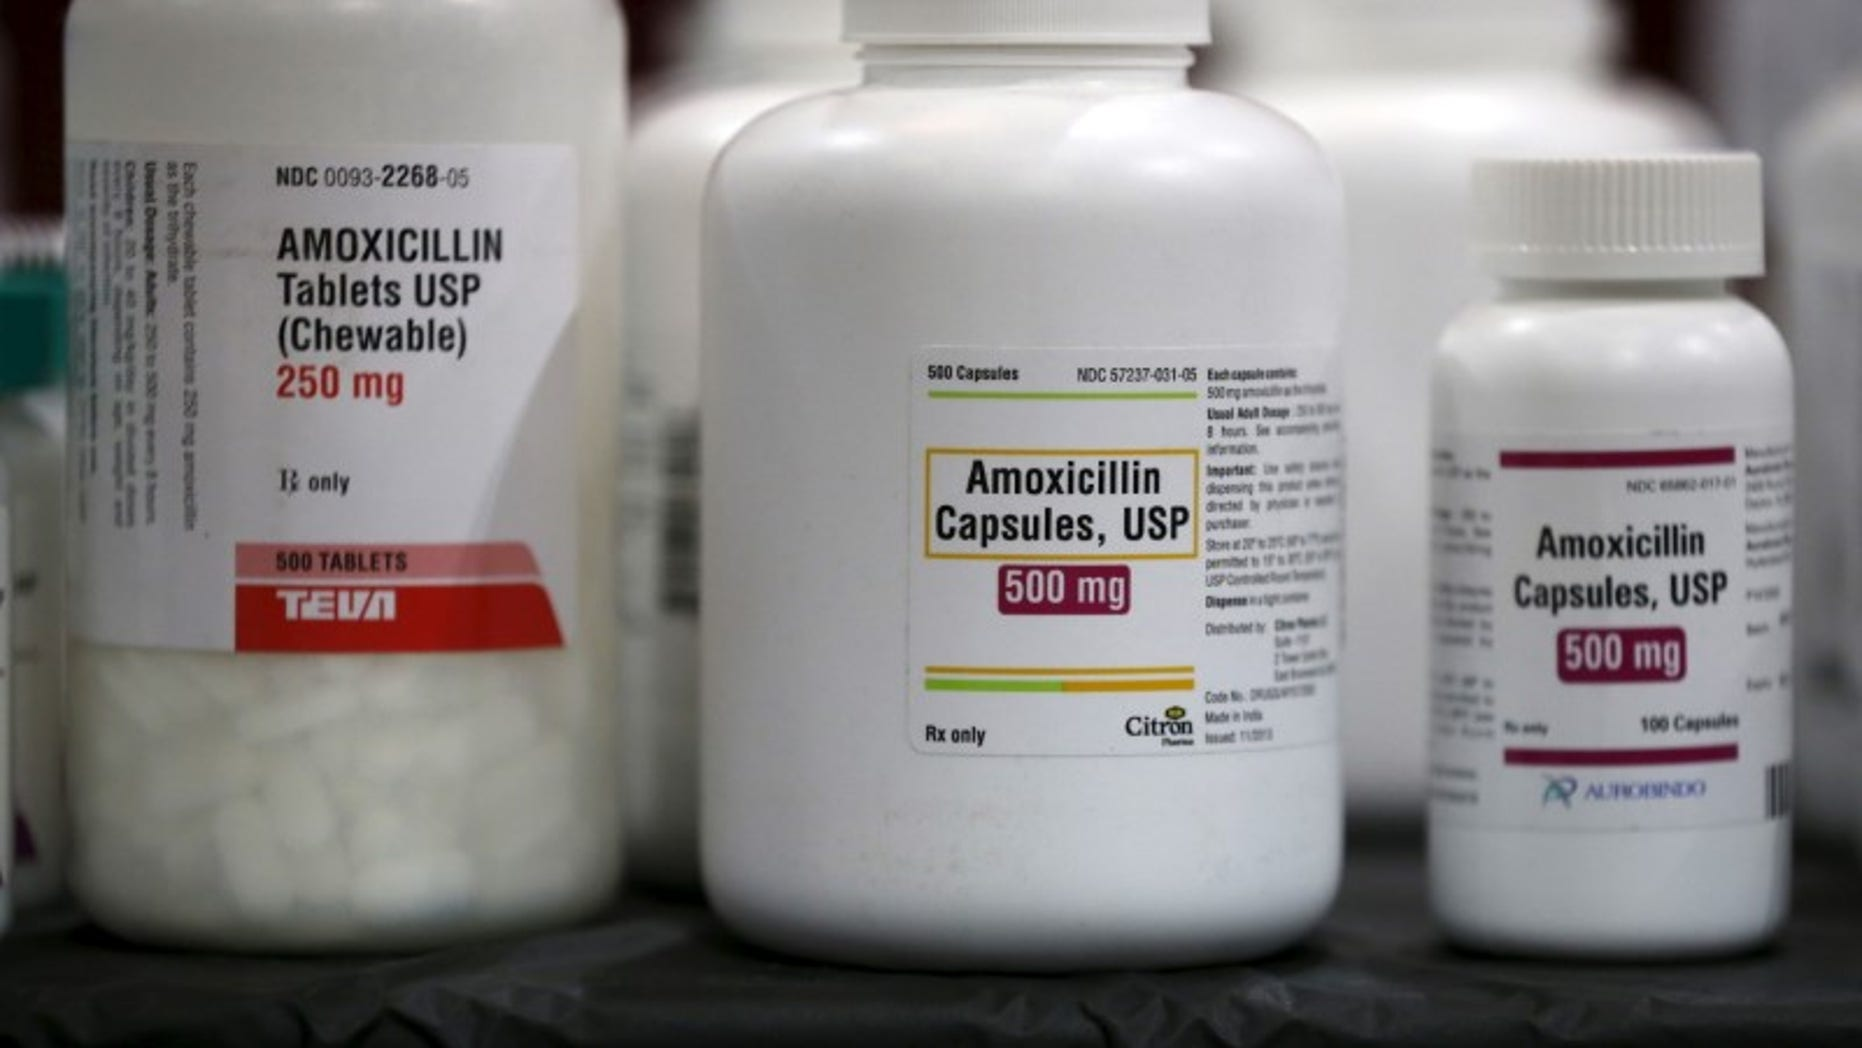 Amoxicillin penicillin antibiotics are seen in the pharmacy at a free medical and dental health clinic in Los Angeles